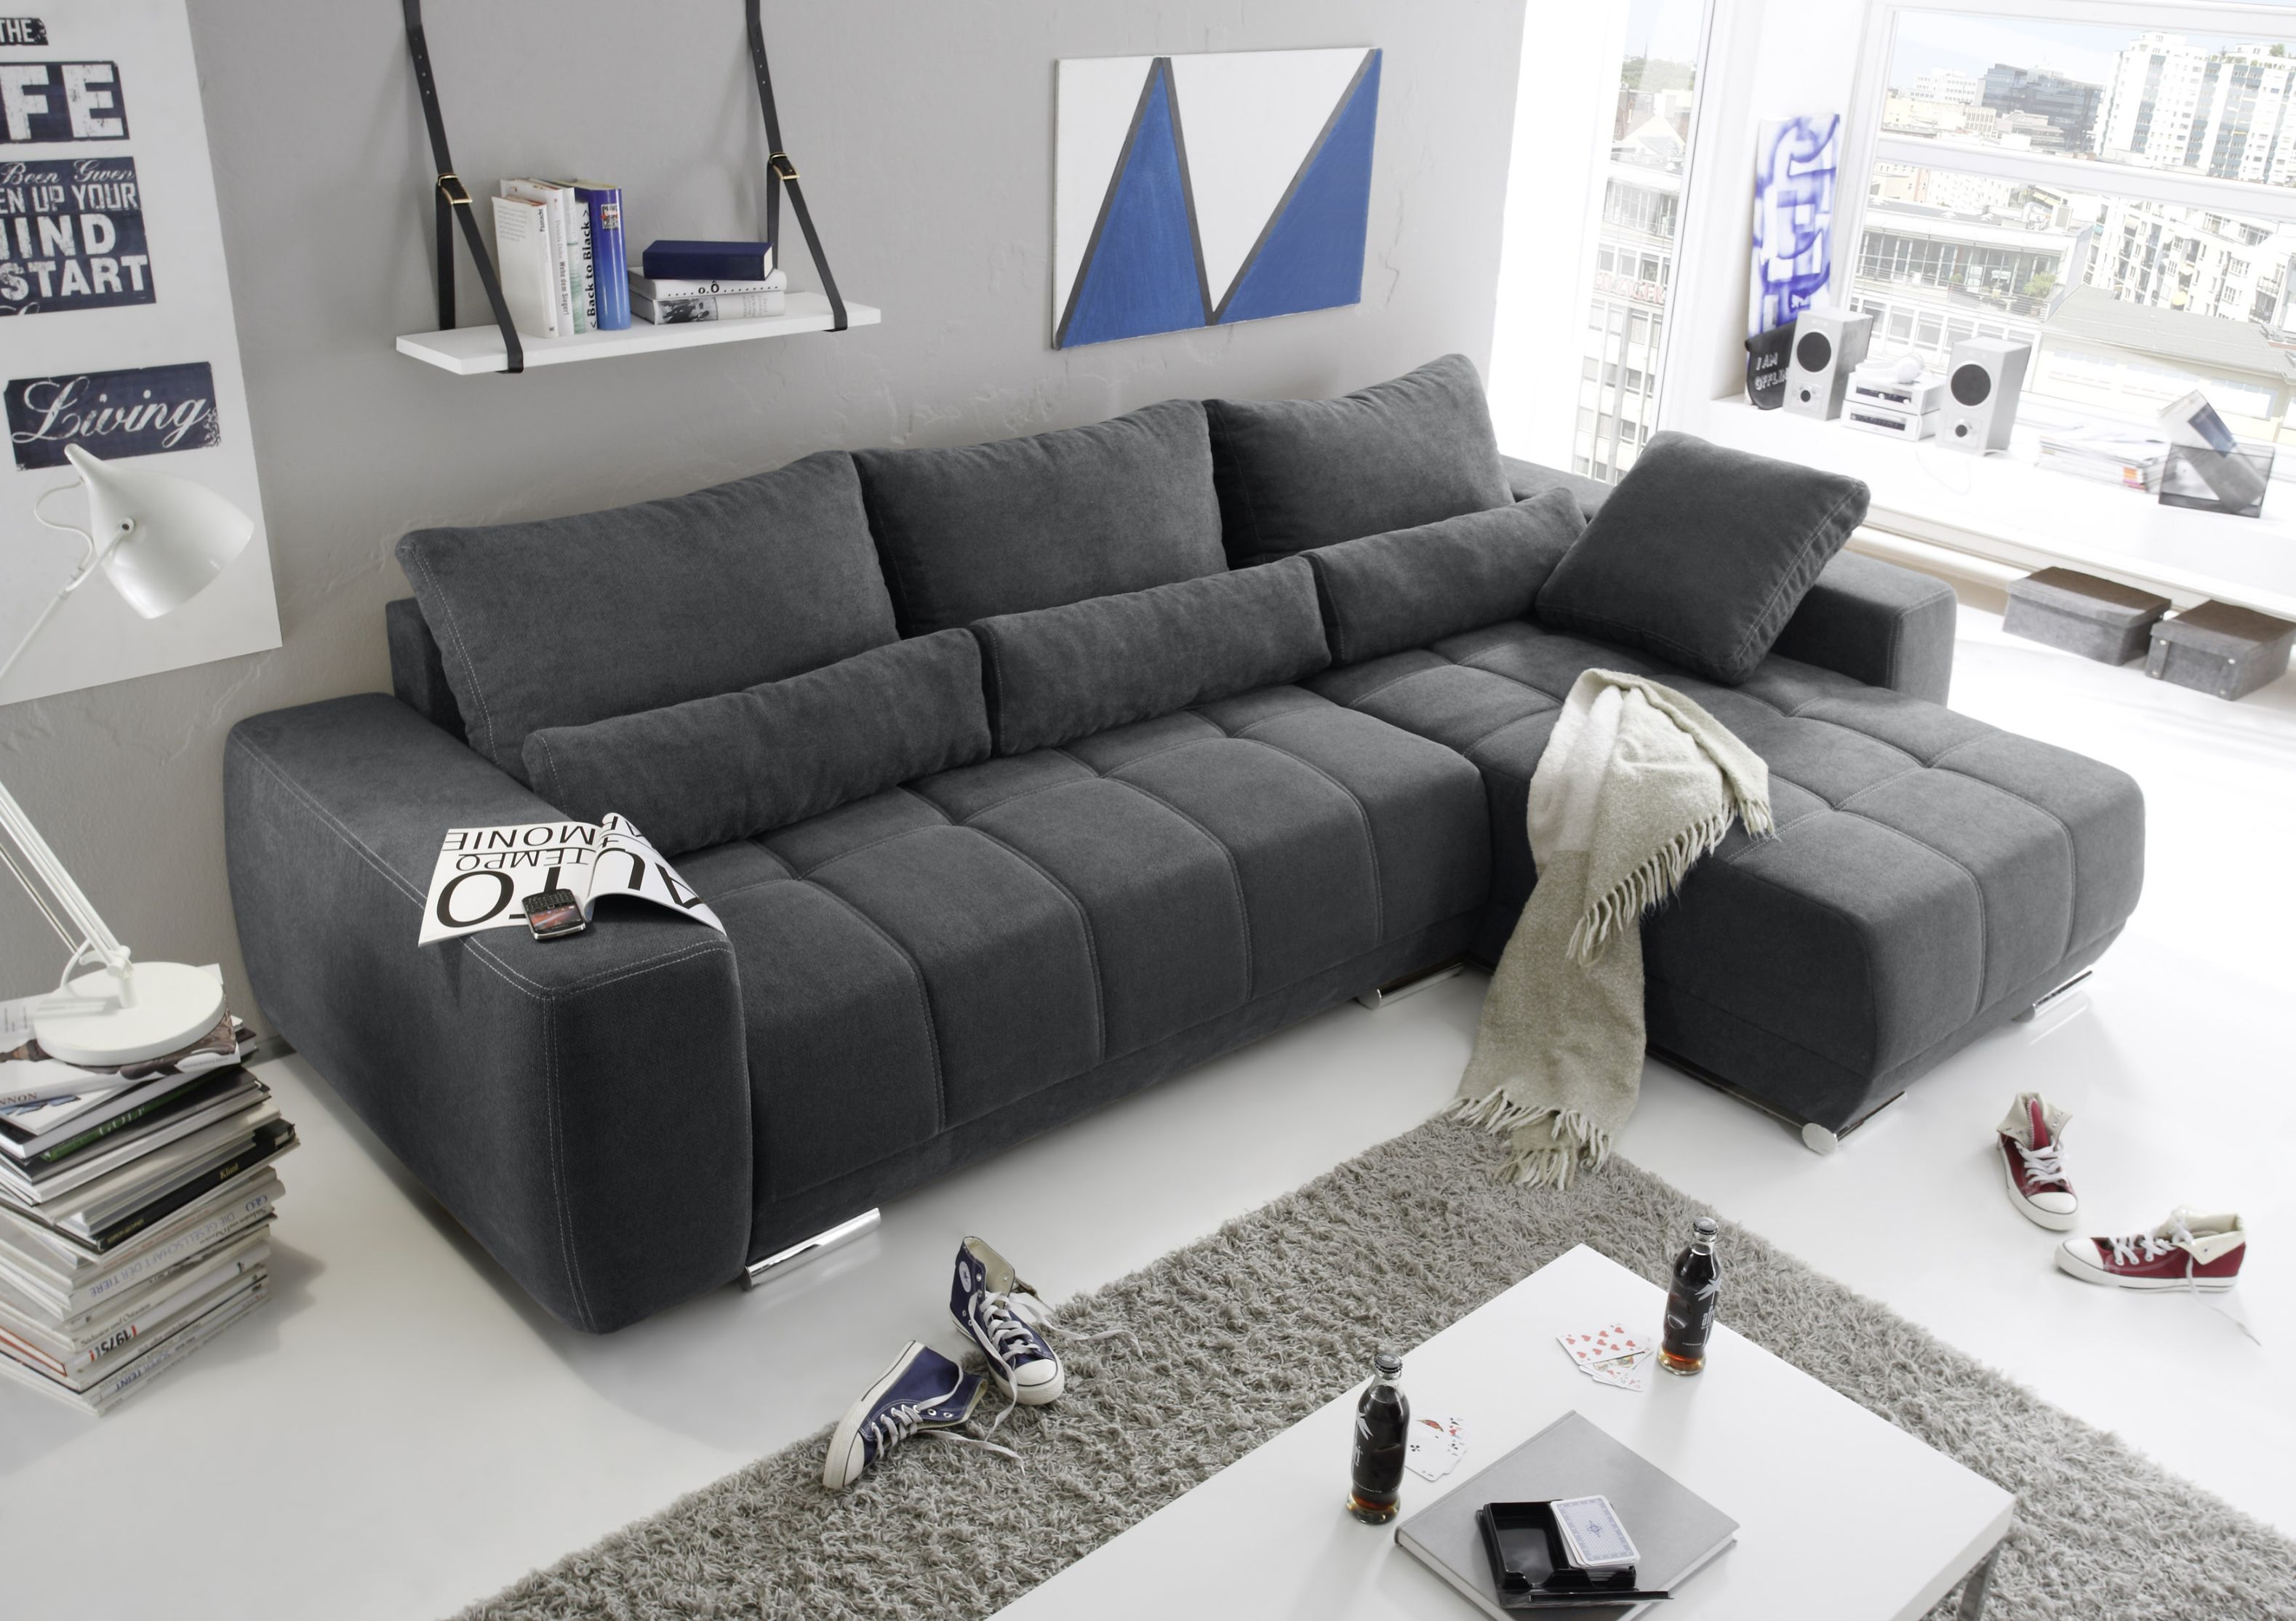 eckcouch lopez couch schlafsofa funktionssofa ausziehbar grau 305 cm ebay. Black Bedroom Furniture Sets. Home Design Ideas